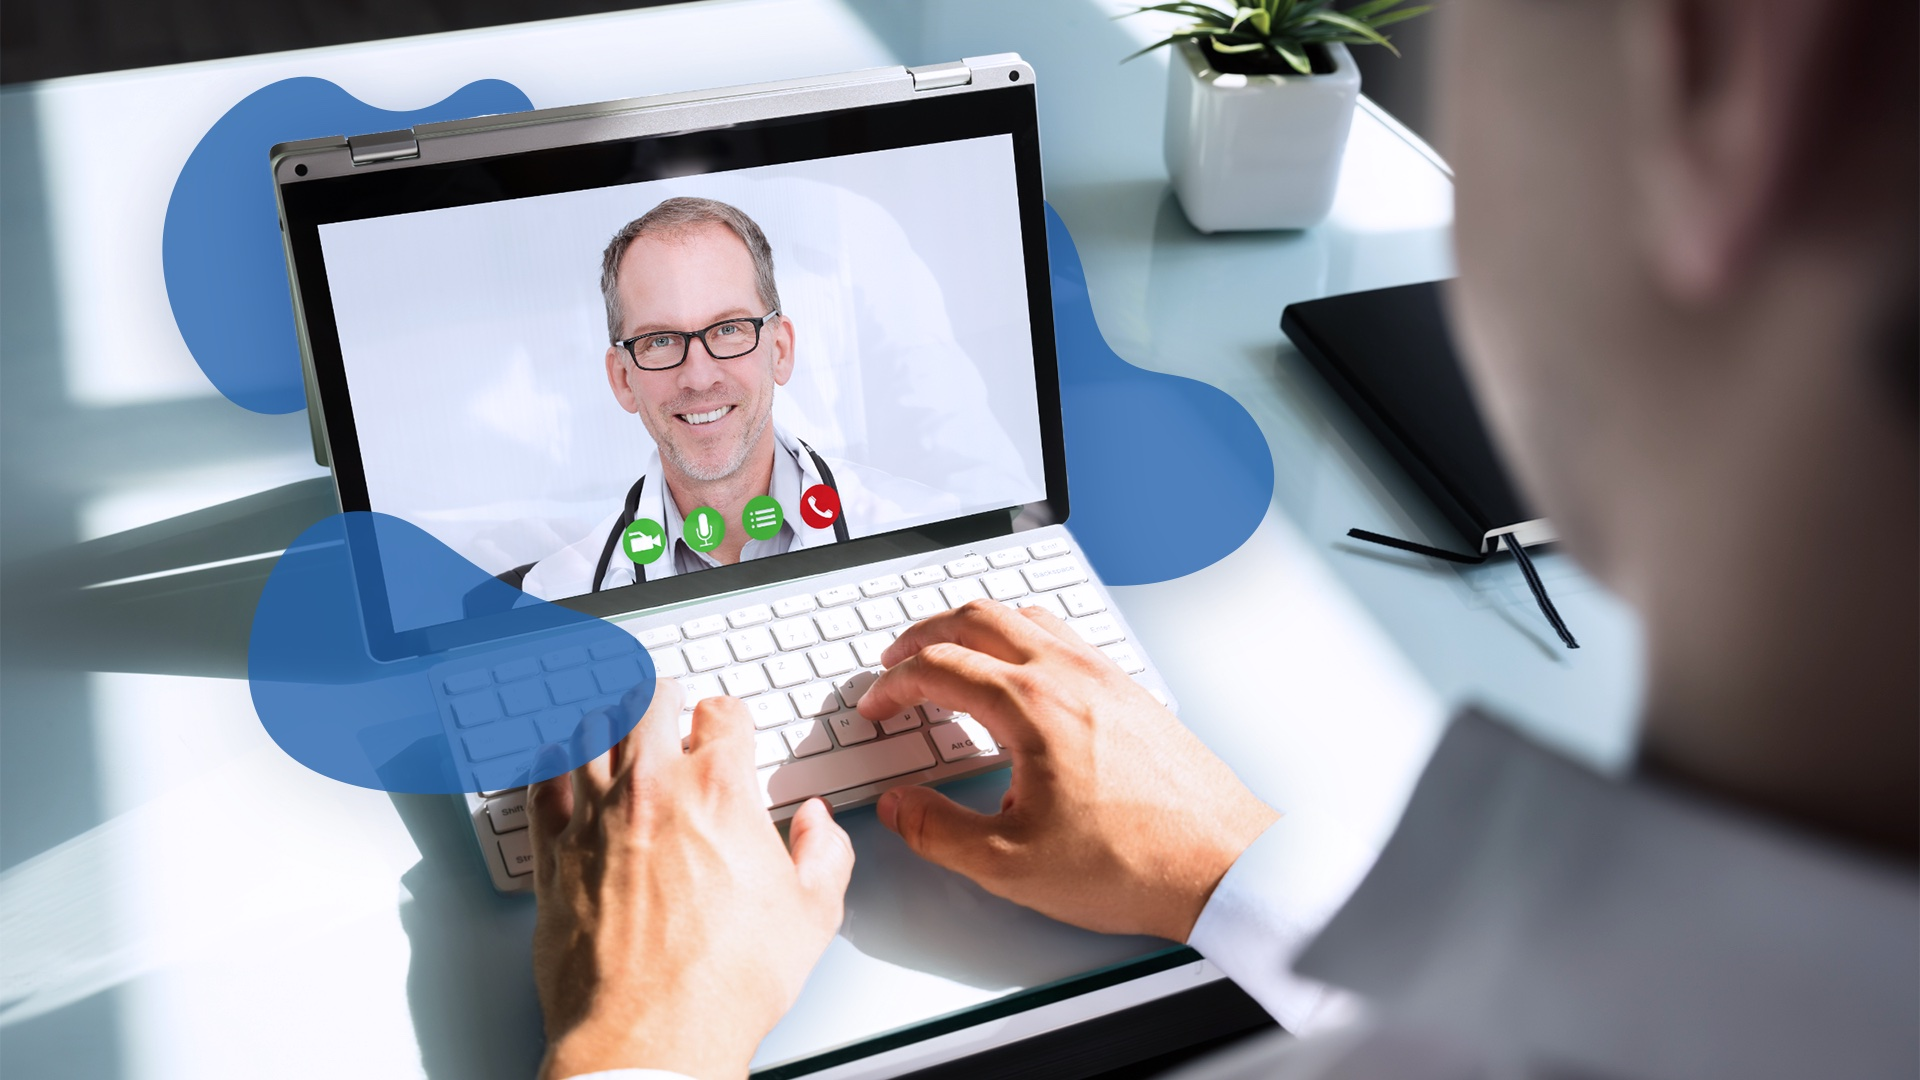 HOW TO GET THE MOST OUT OF YOUR TELEMEDICINE APPOINTMENT